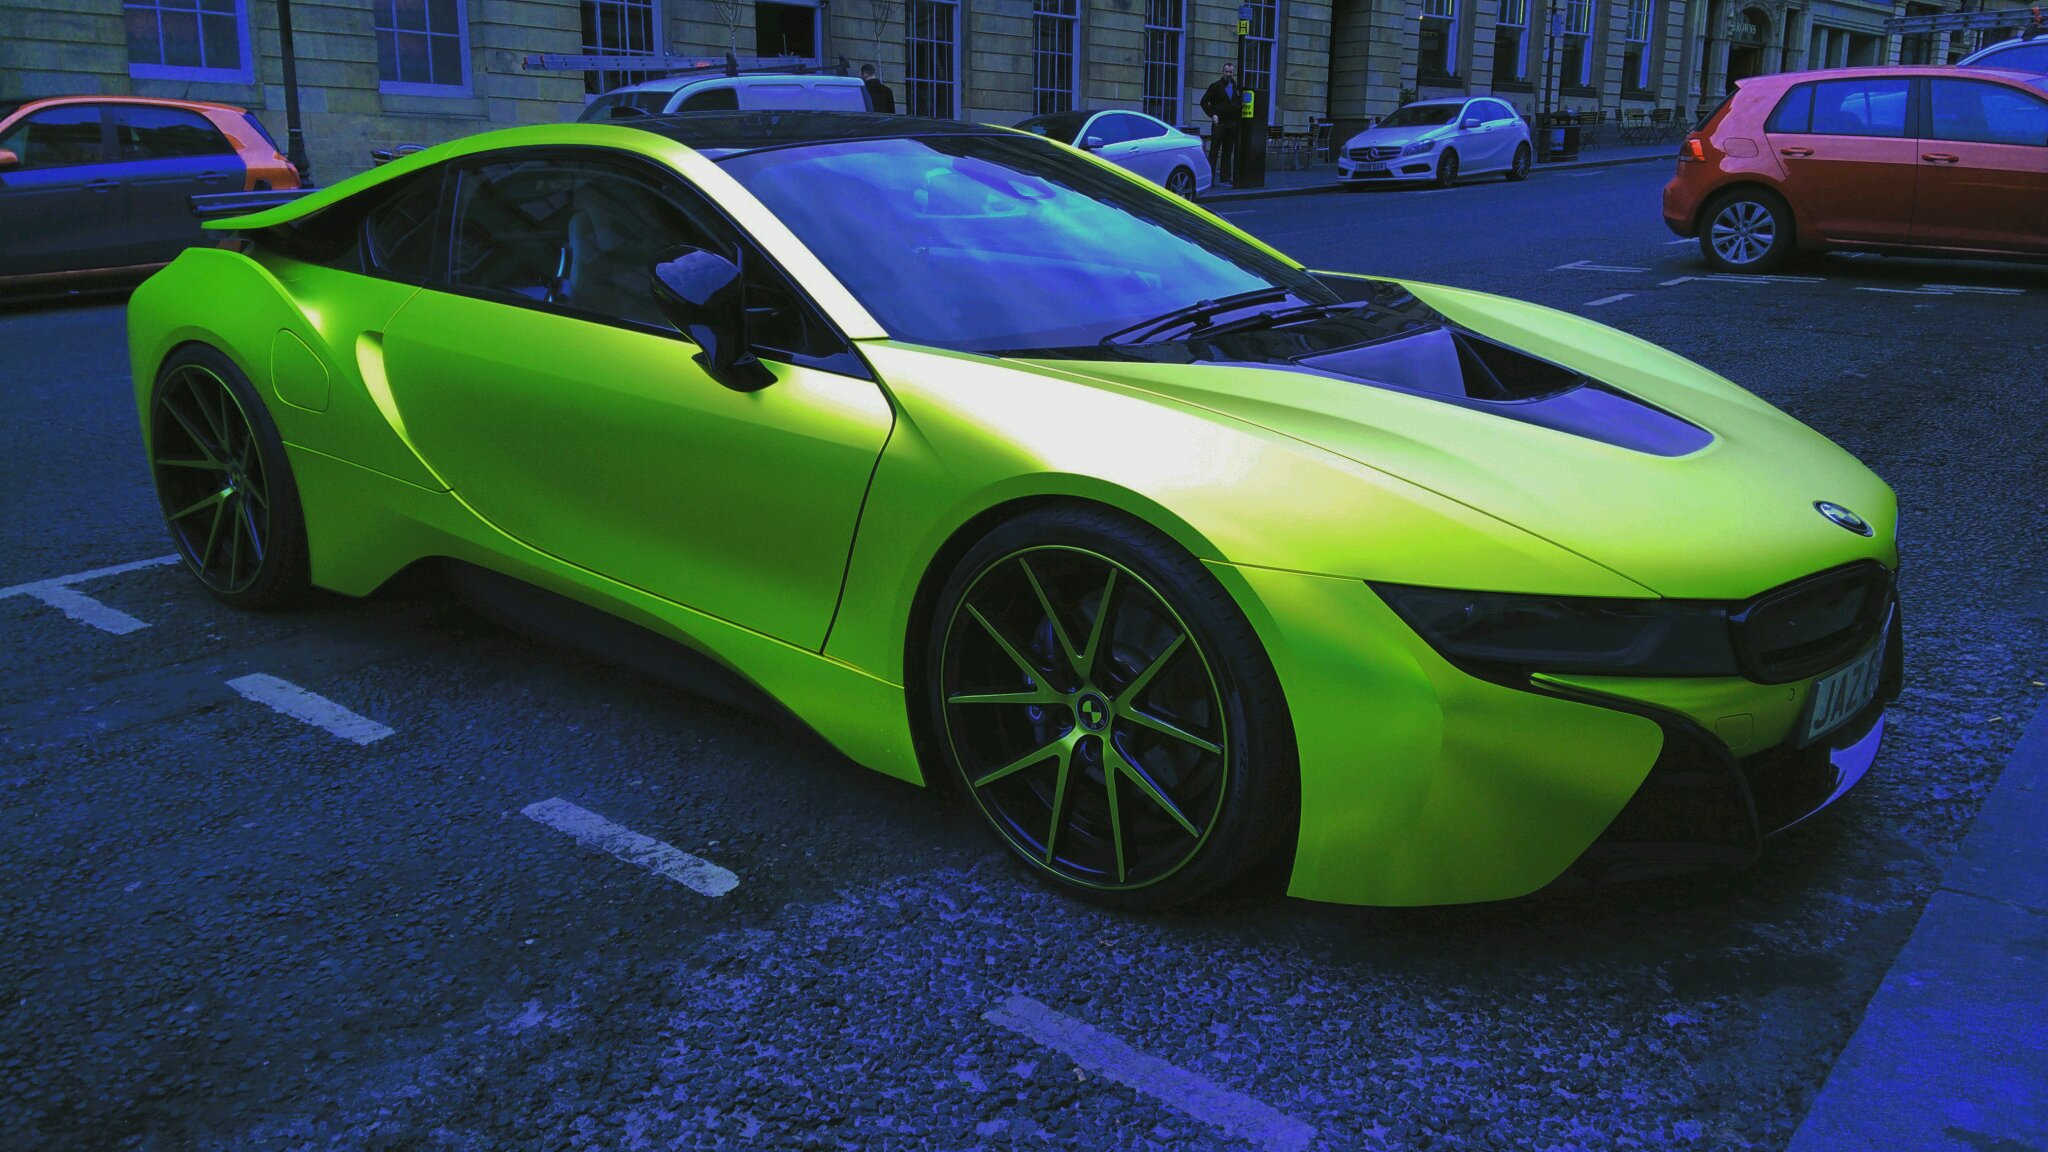 Lime Green Wrapped Bmw I8